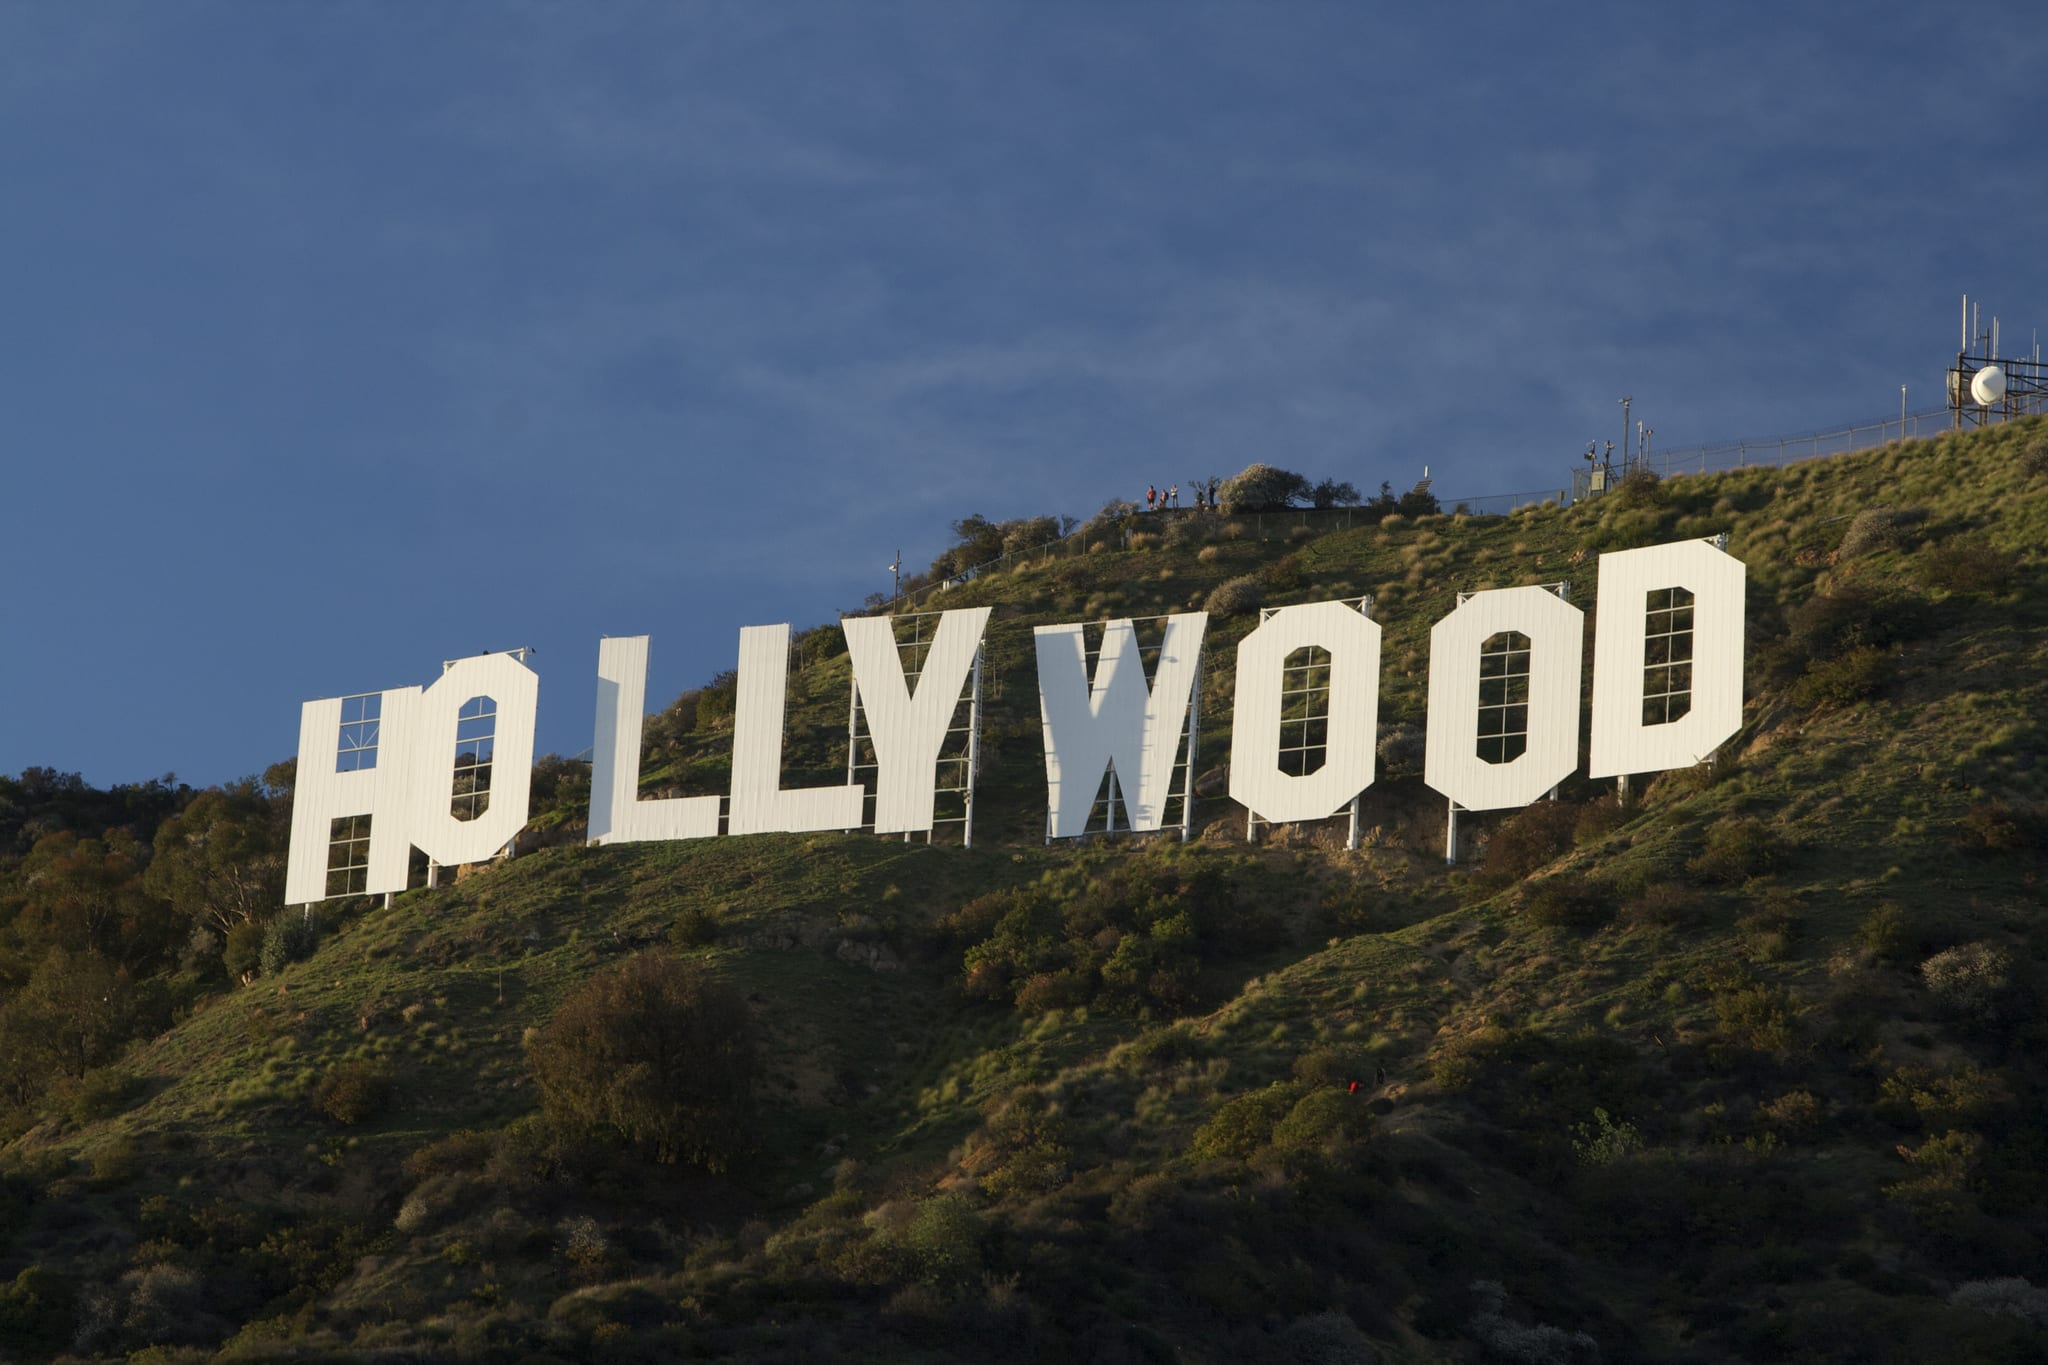 warner bros wants to build a sky tram to the hollywood sign